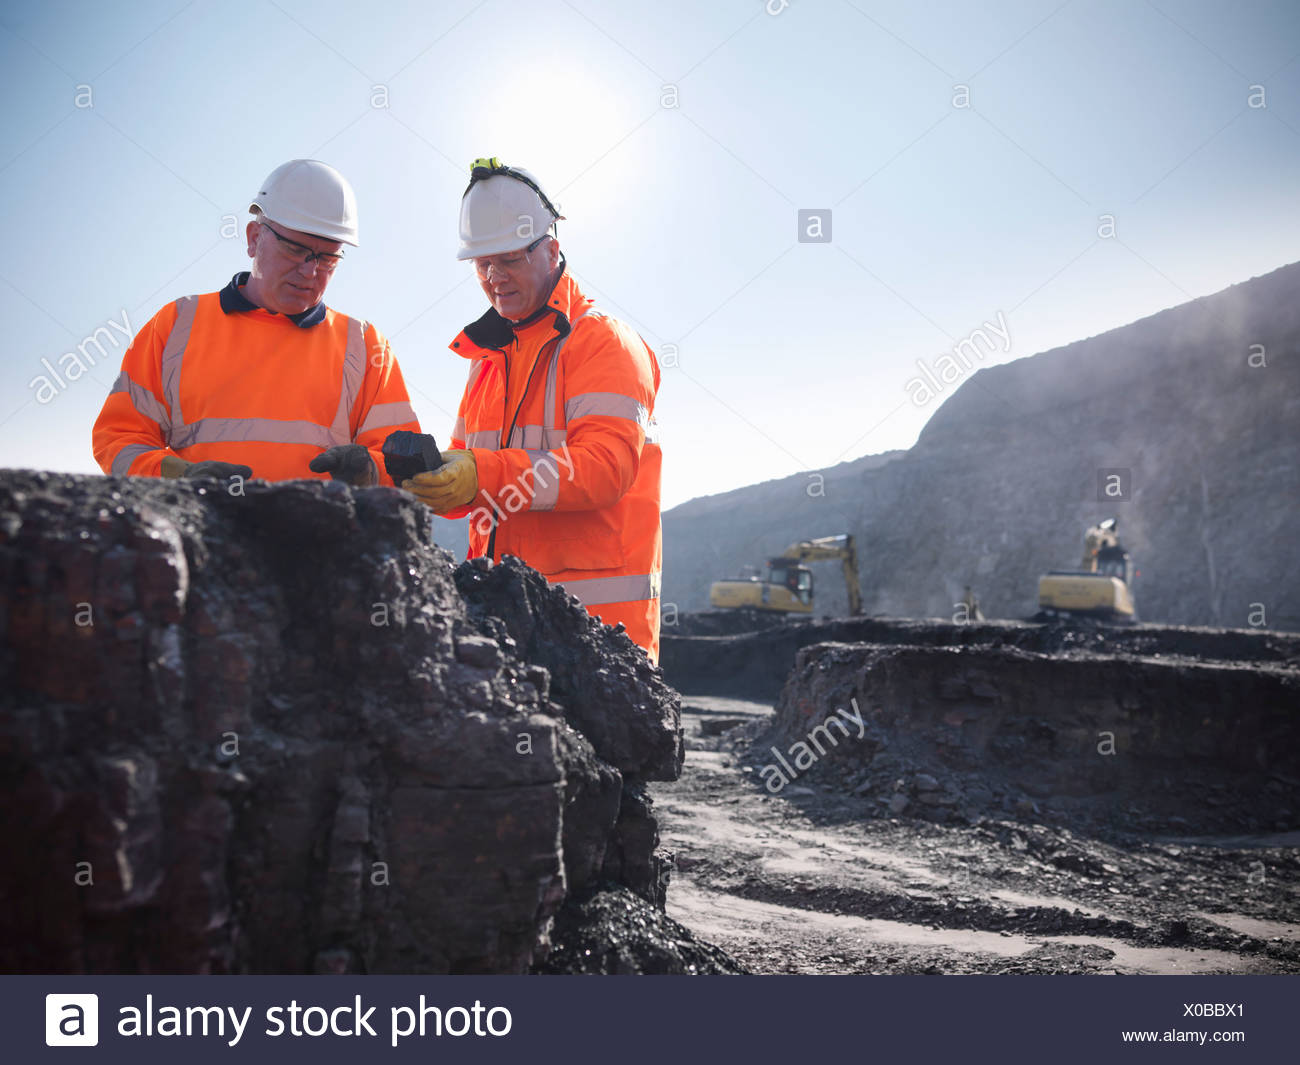 Workers inspecting coal at mine - Stock Image